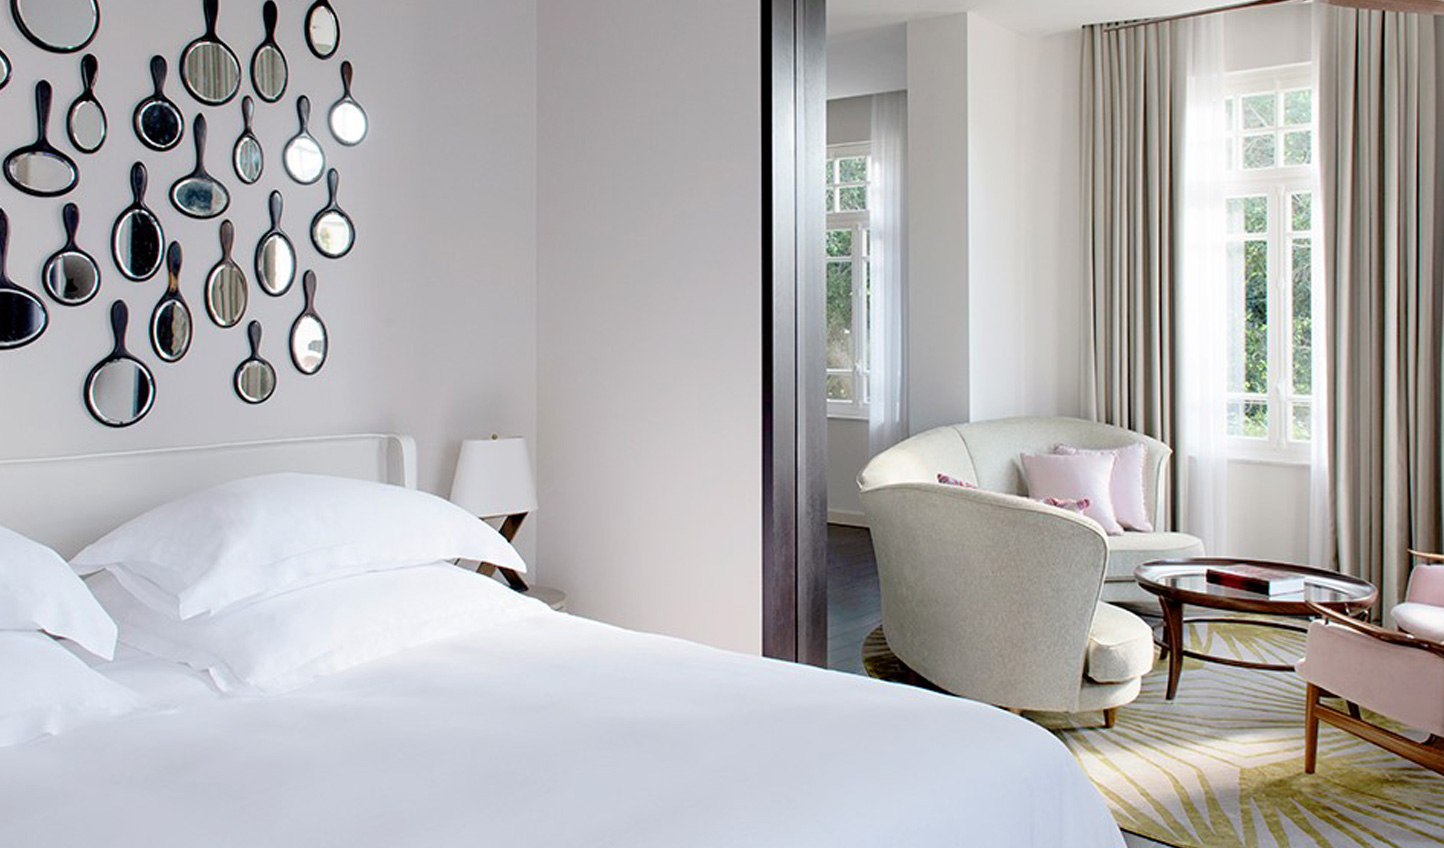 Stay at The Norma Tel Aviv, a luxury boutique hotel in the White City